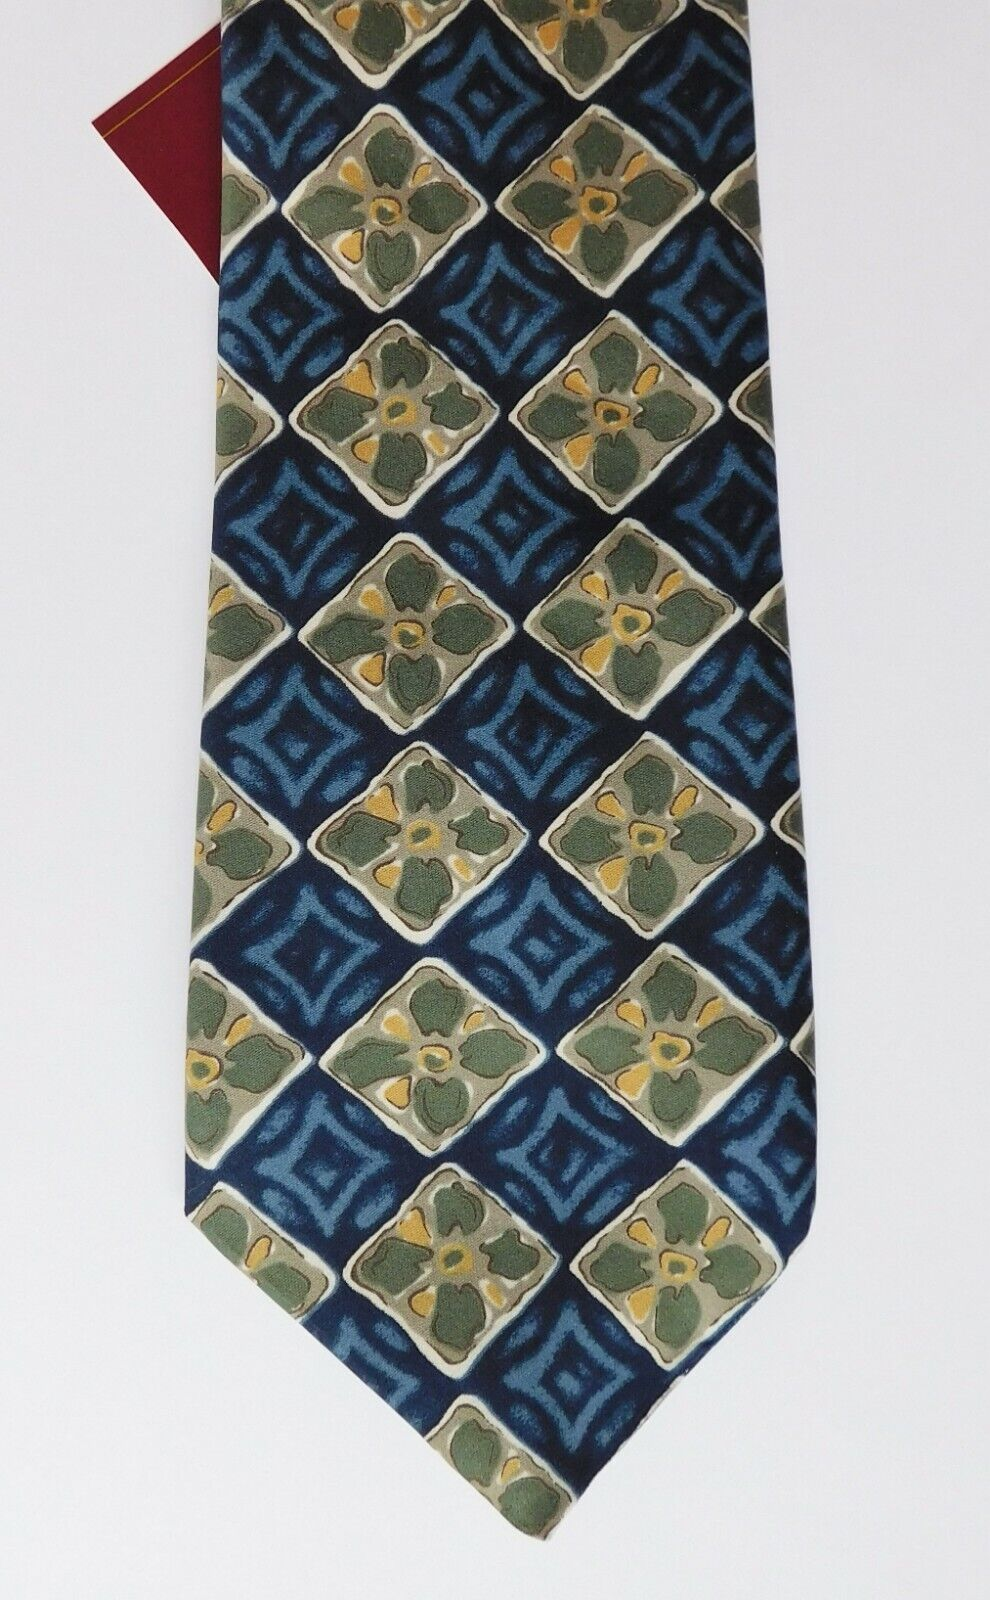 Burton Mens Wear tie with floral check pattern UNUSED but IMPERFECT made in UK